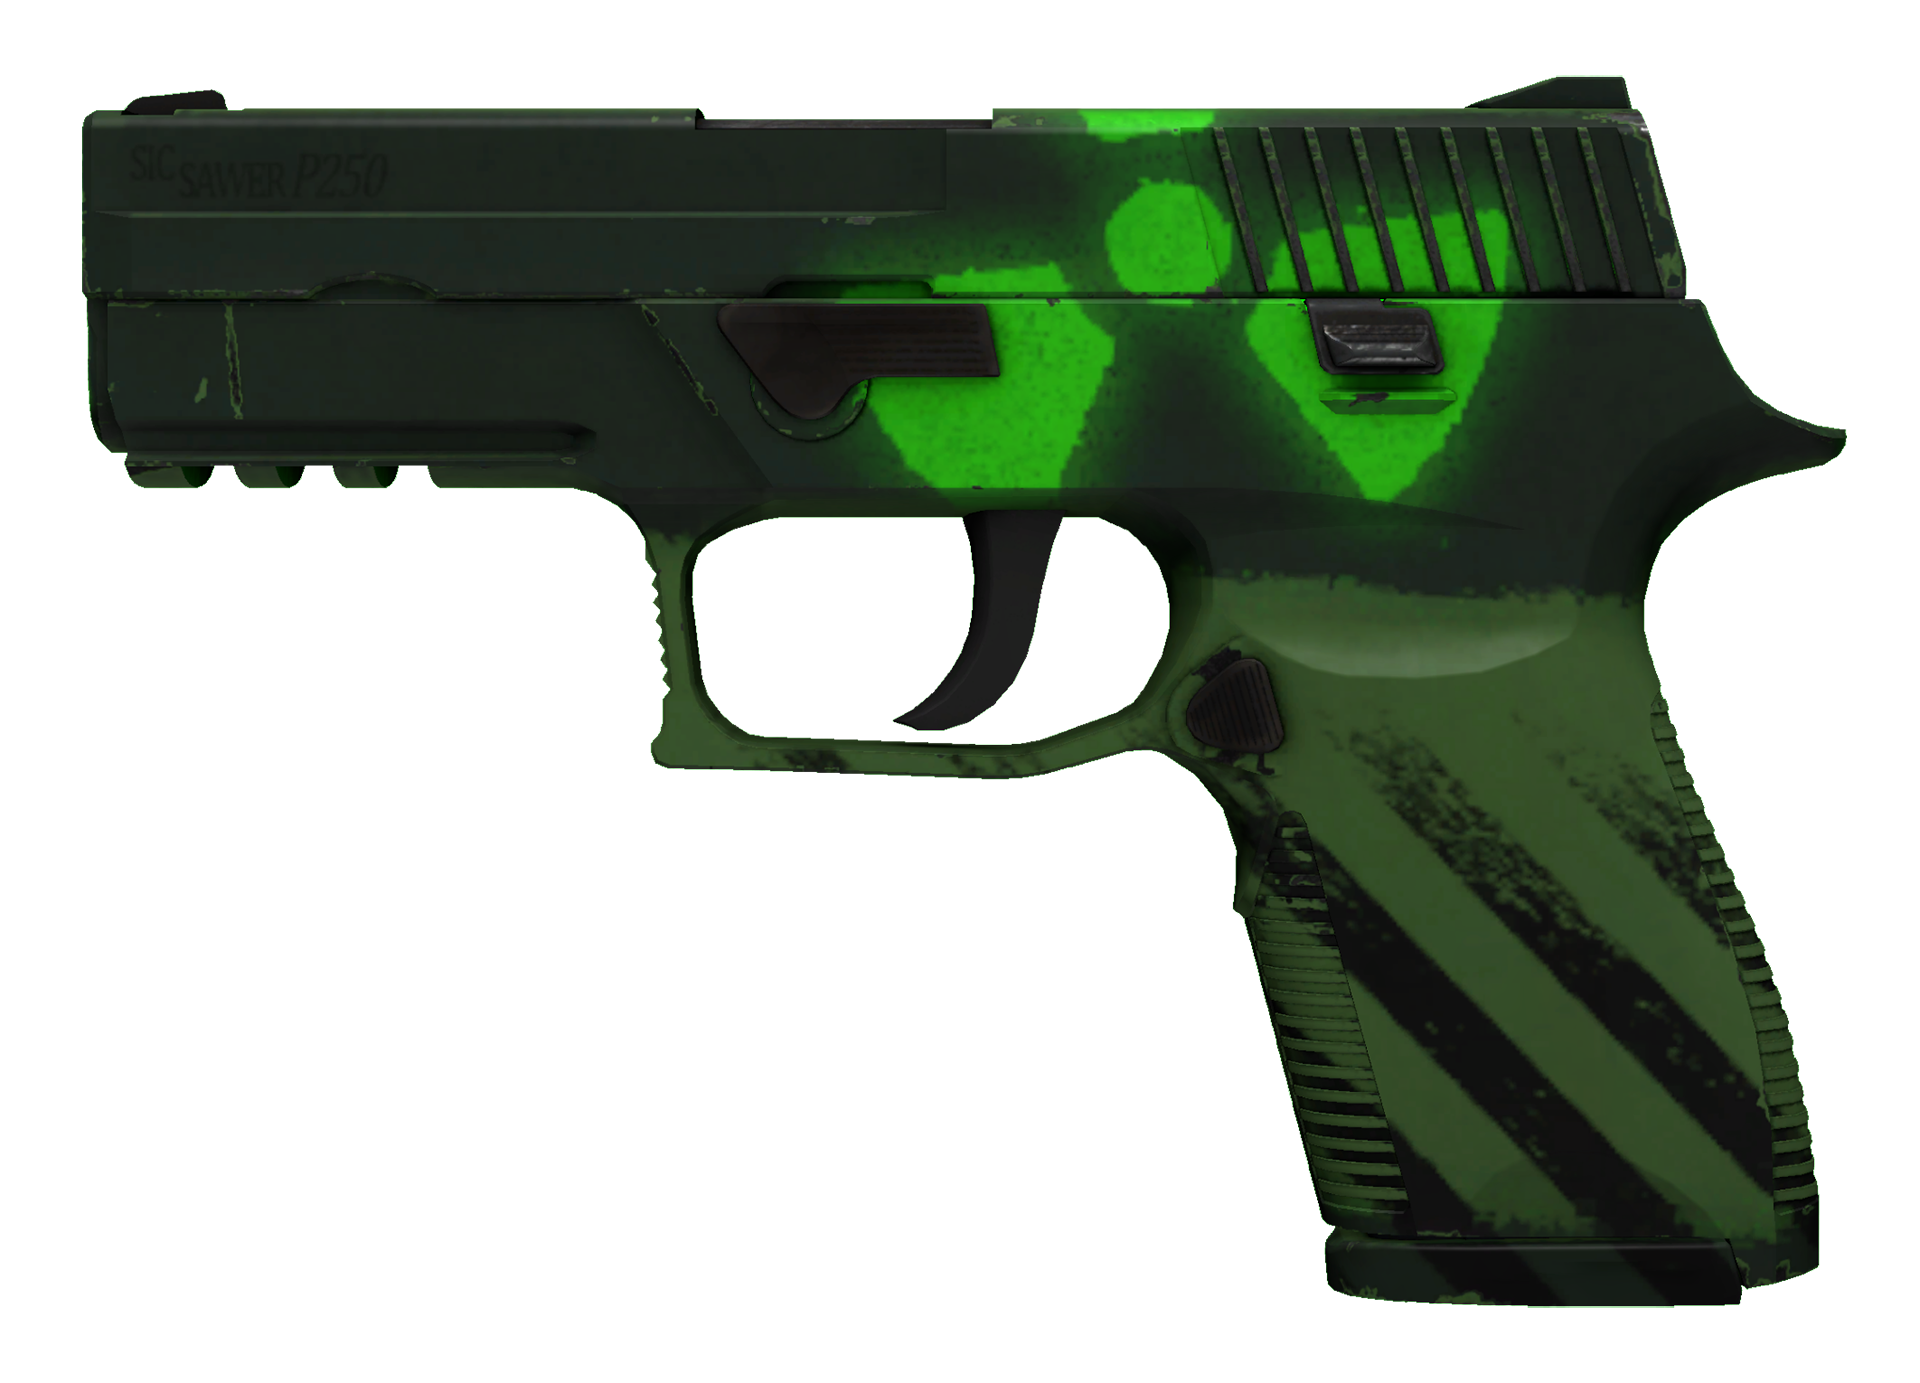 P250 Nuclear Threat Large Rendering